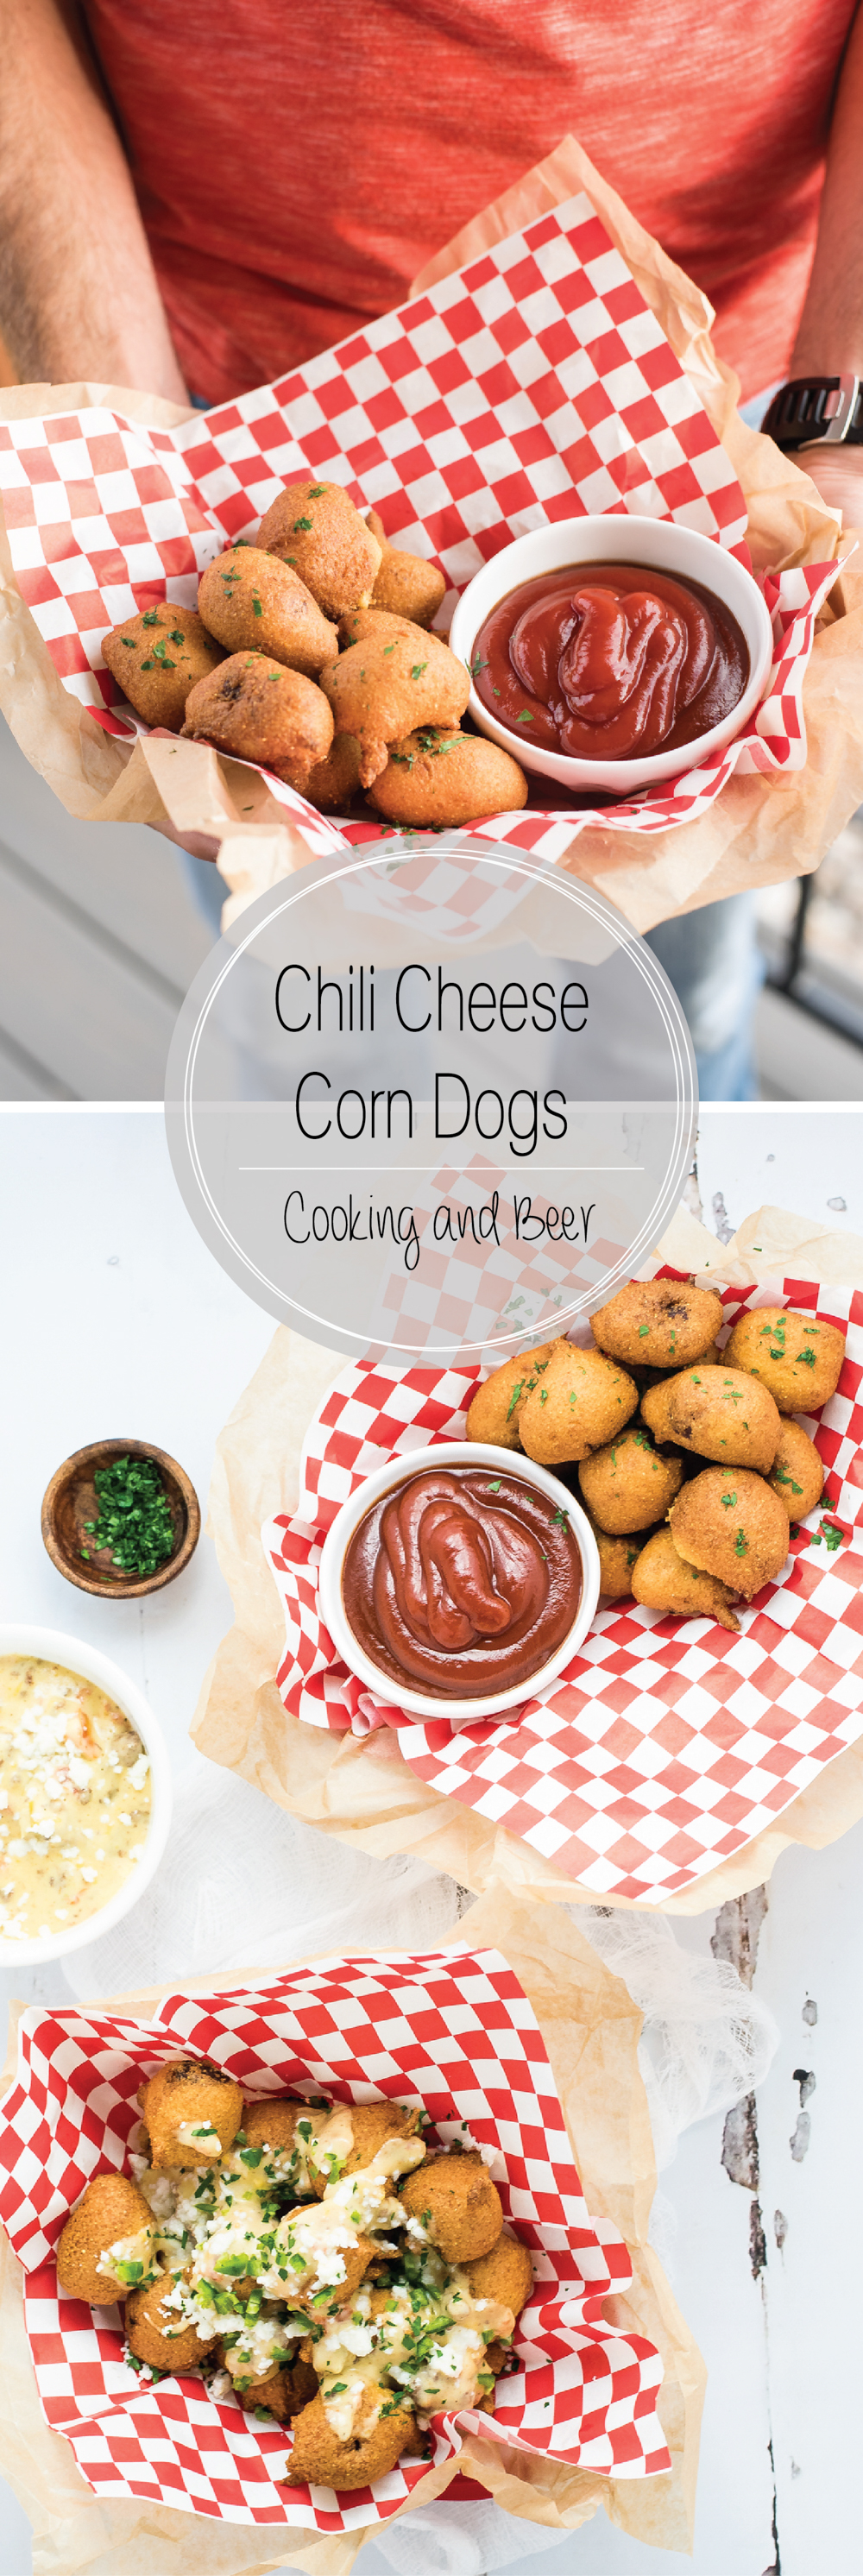 Chili cheese corn dogs are a fun twist on the classic finger food. They are bite-sized morsels that are smothered in a homemade beef queso!